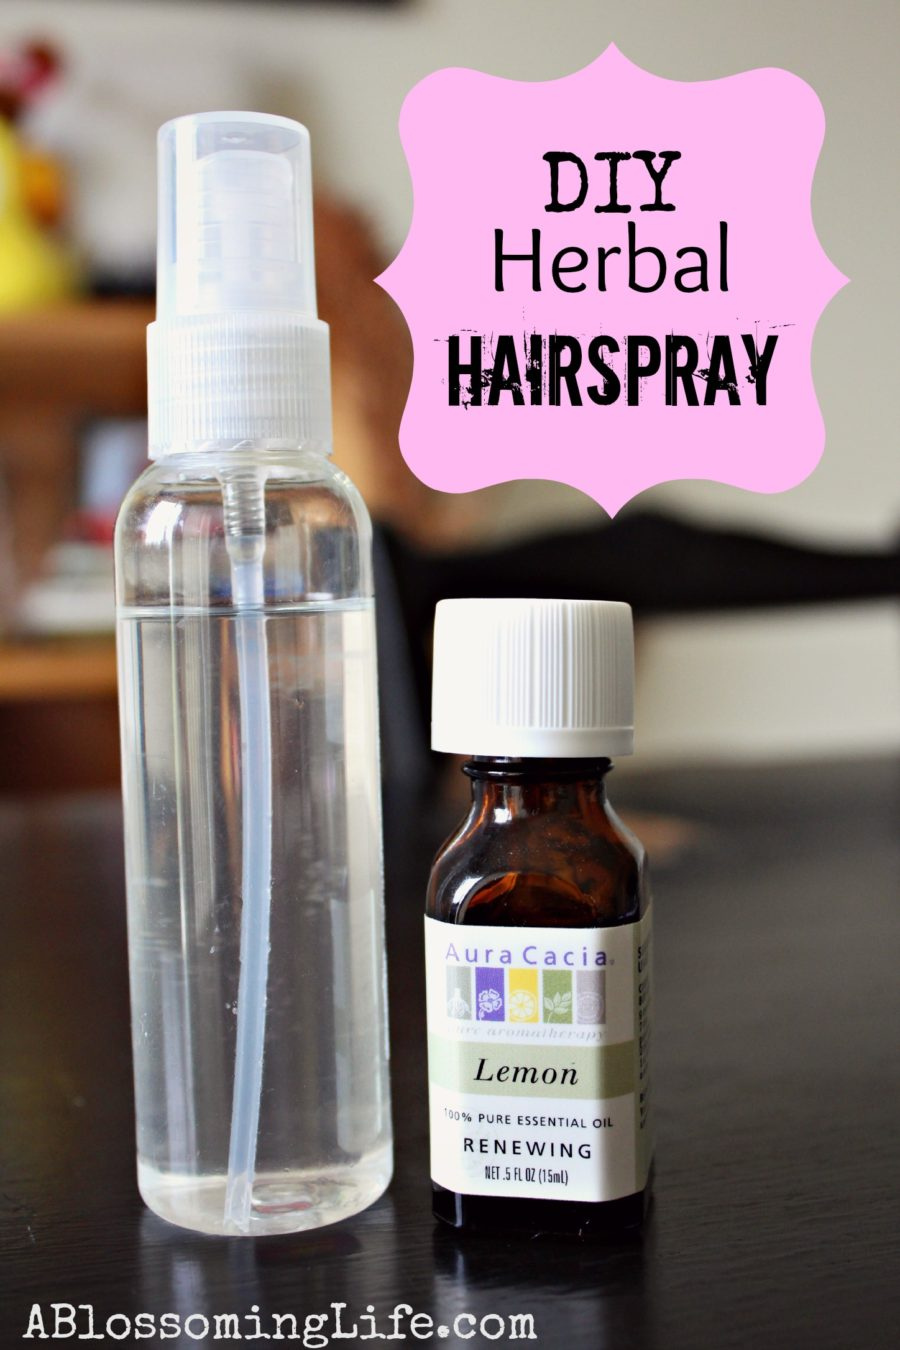 DIY Herbal Hairspray